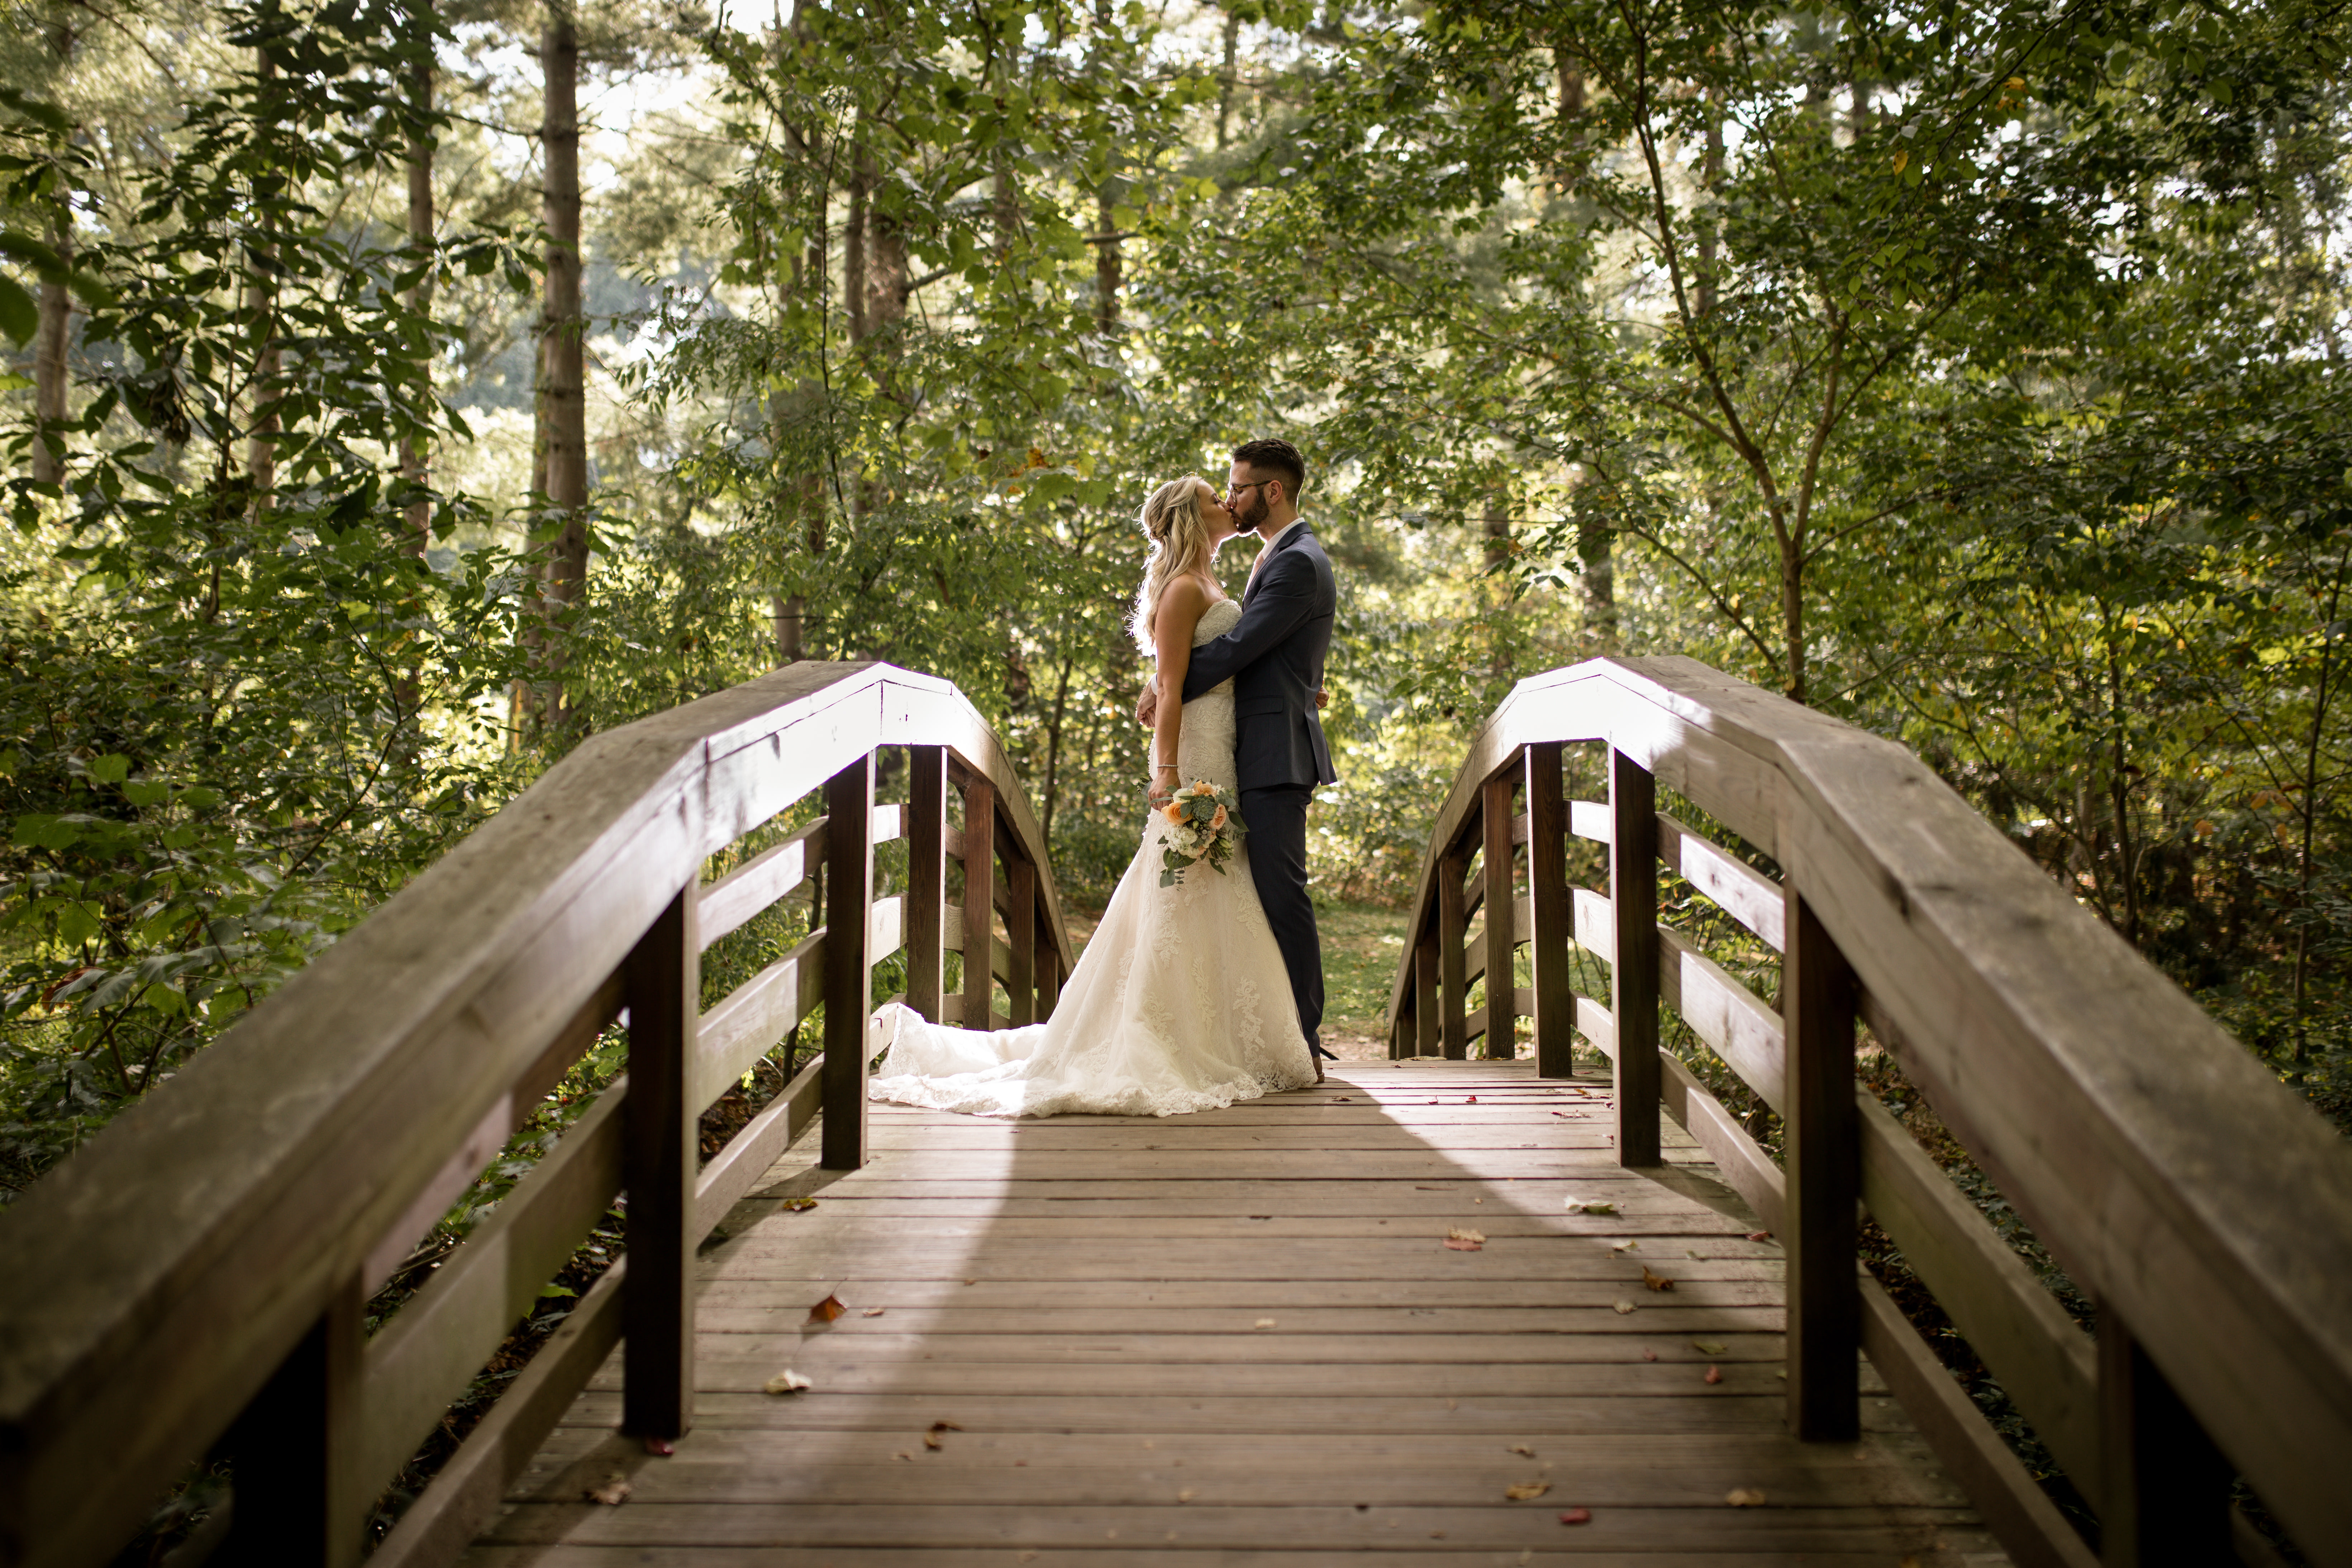 Crest Center and Pavilion Weddings